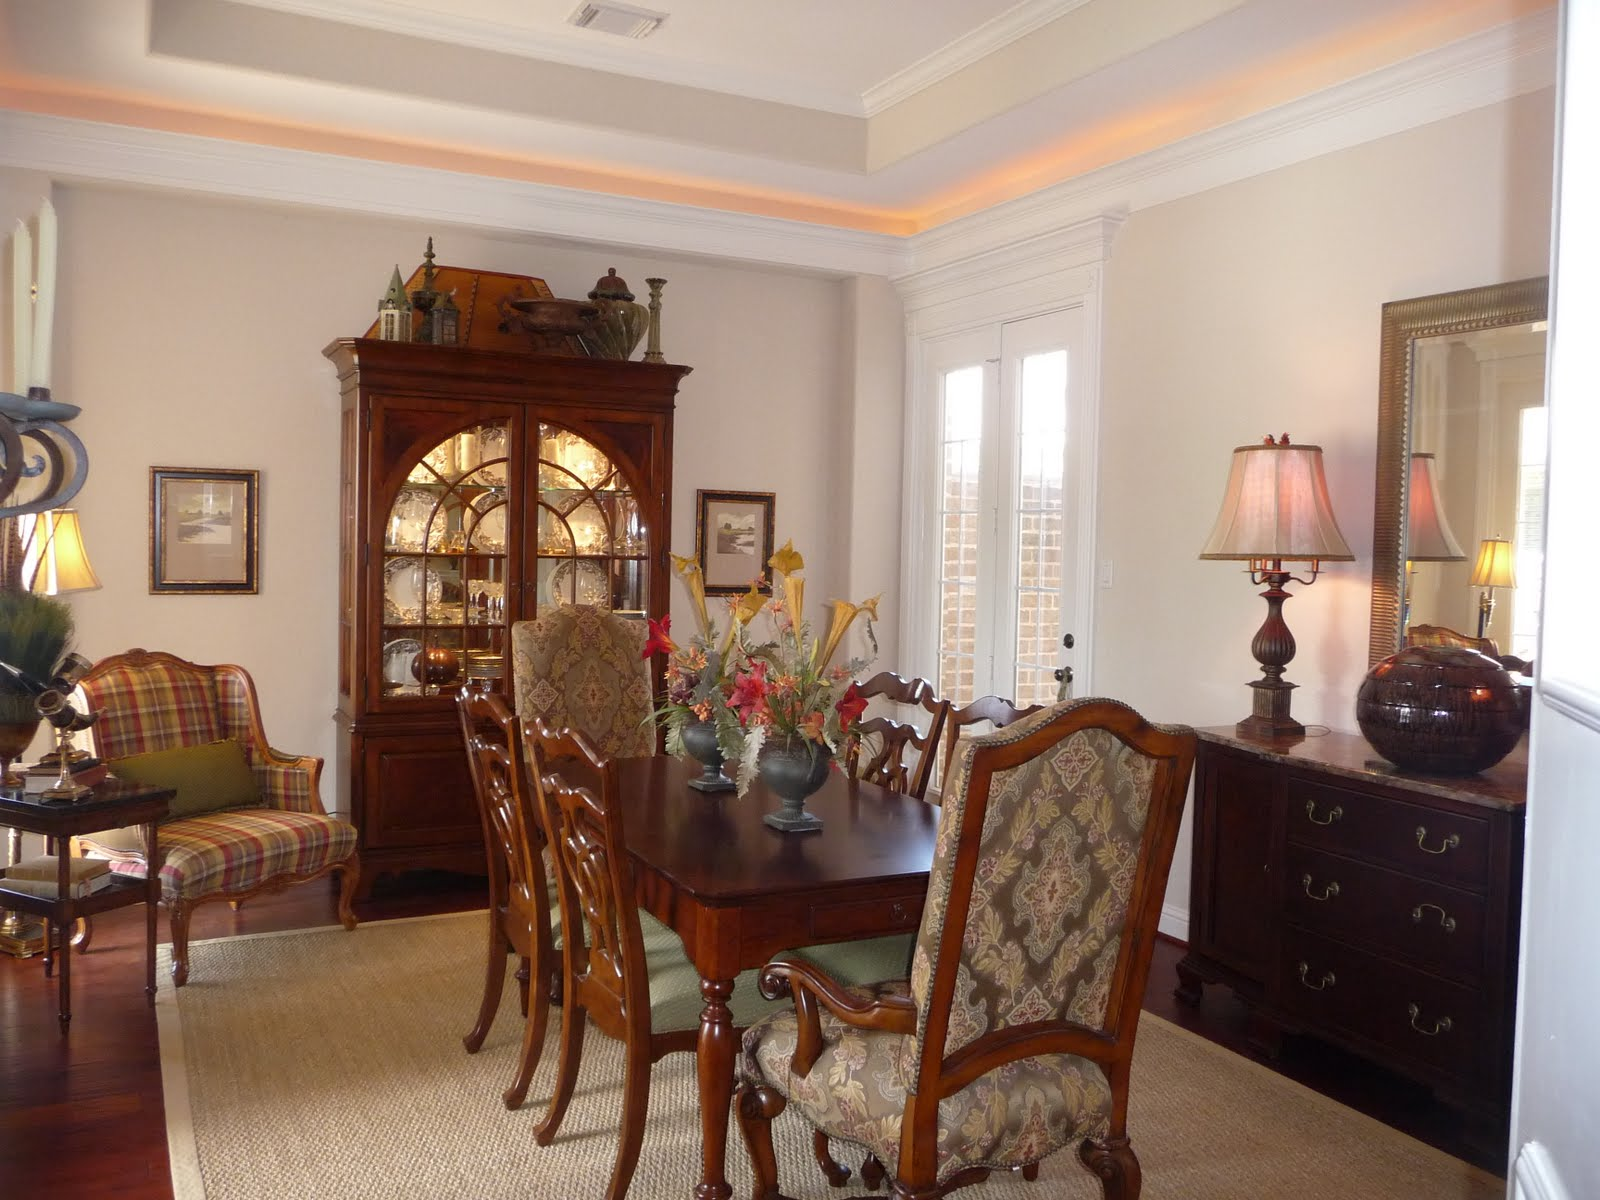 Home interior design and decorating ideas dining room for Images of decorated dining rooms